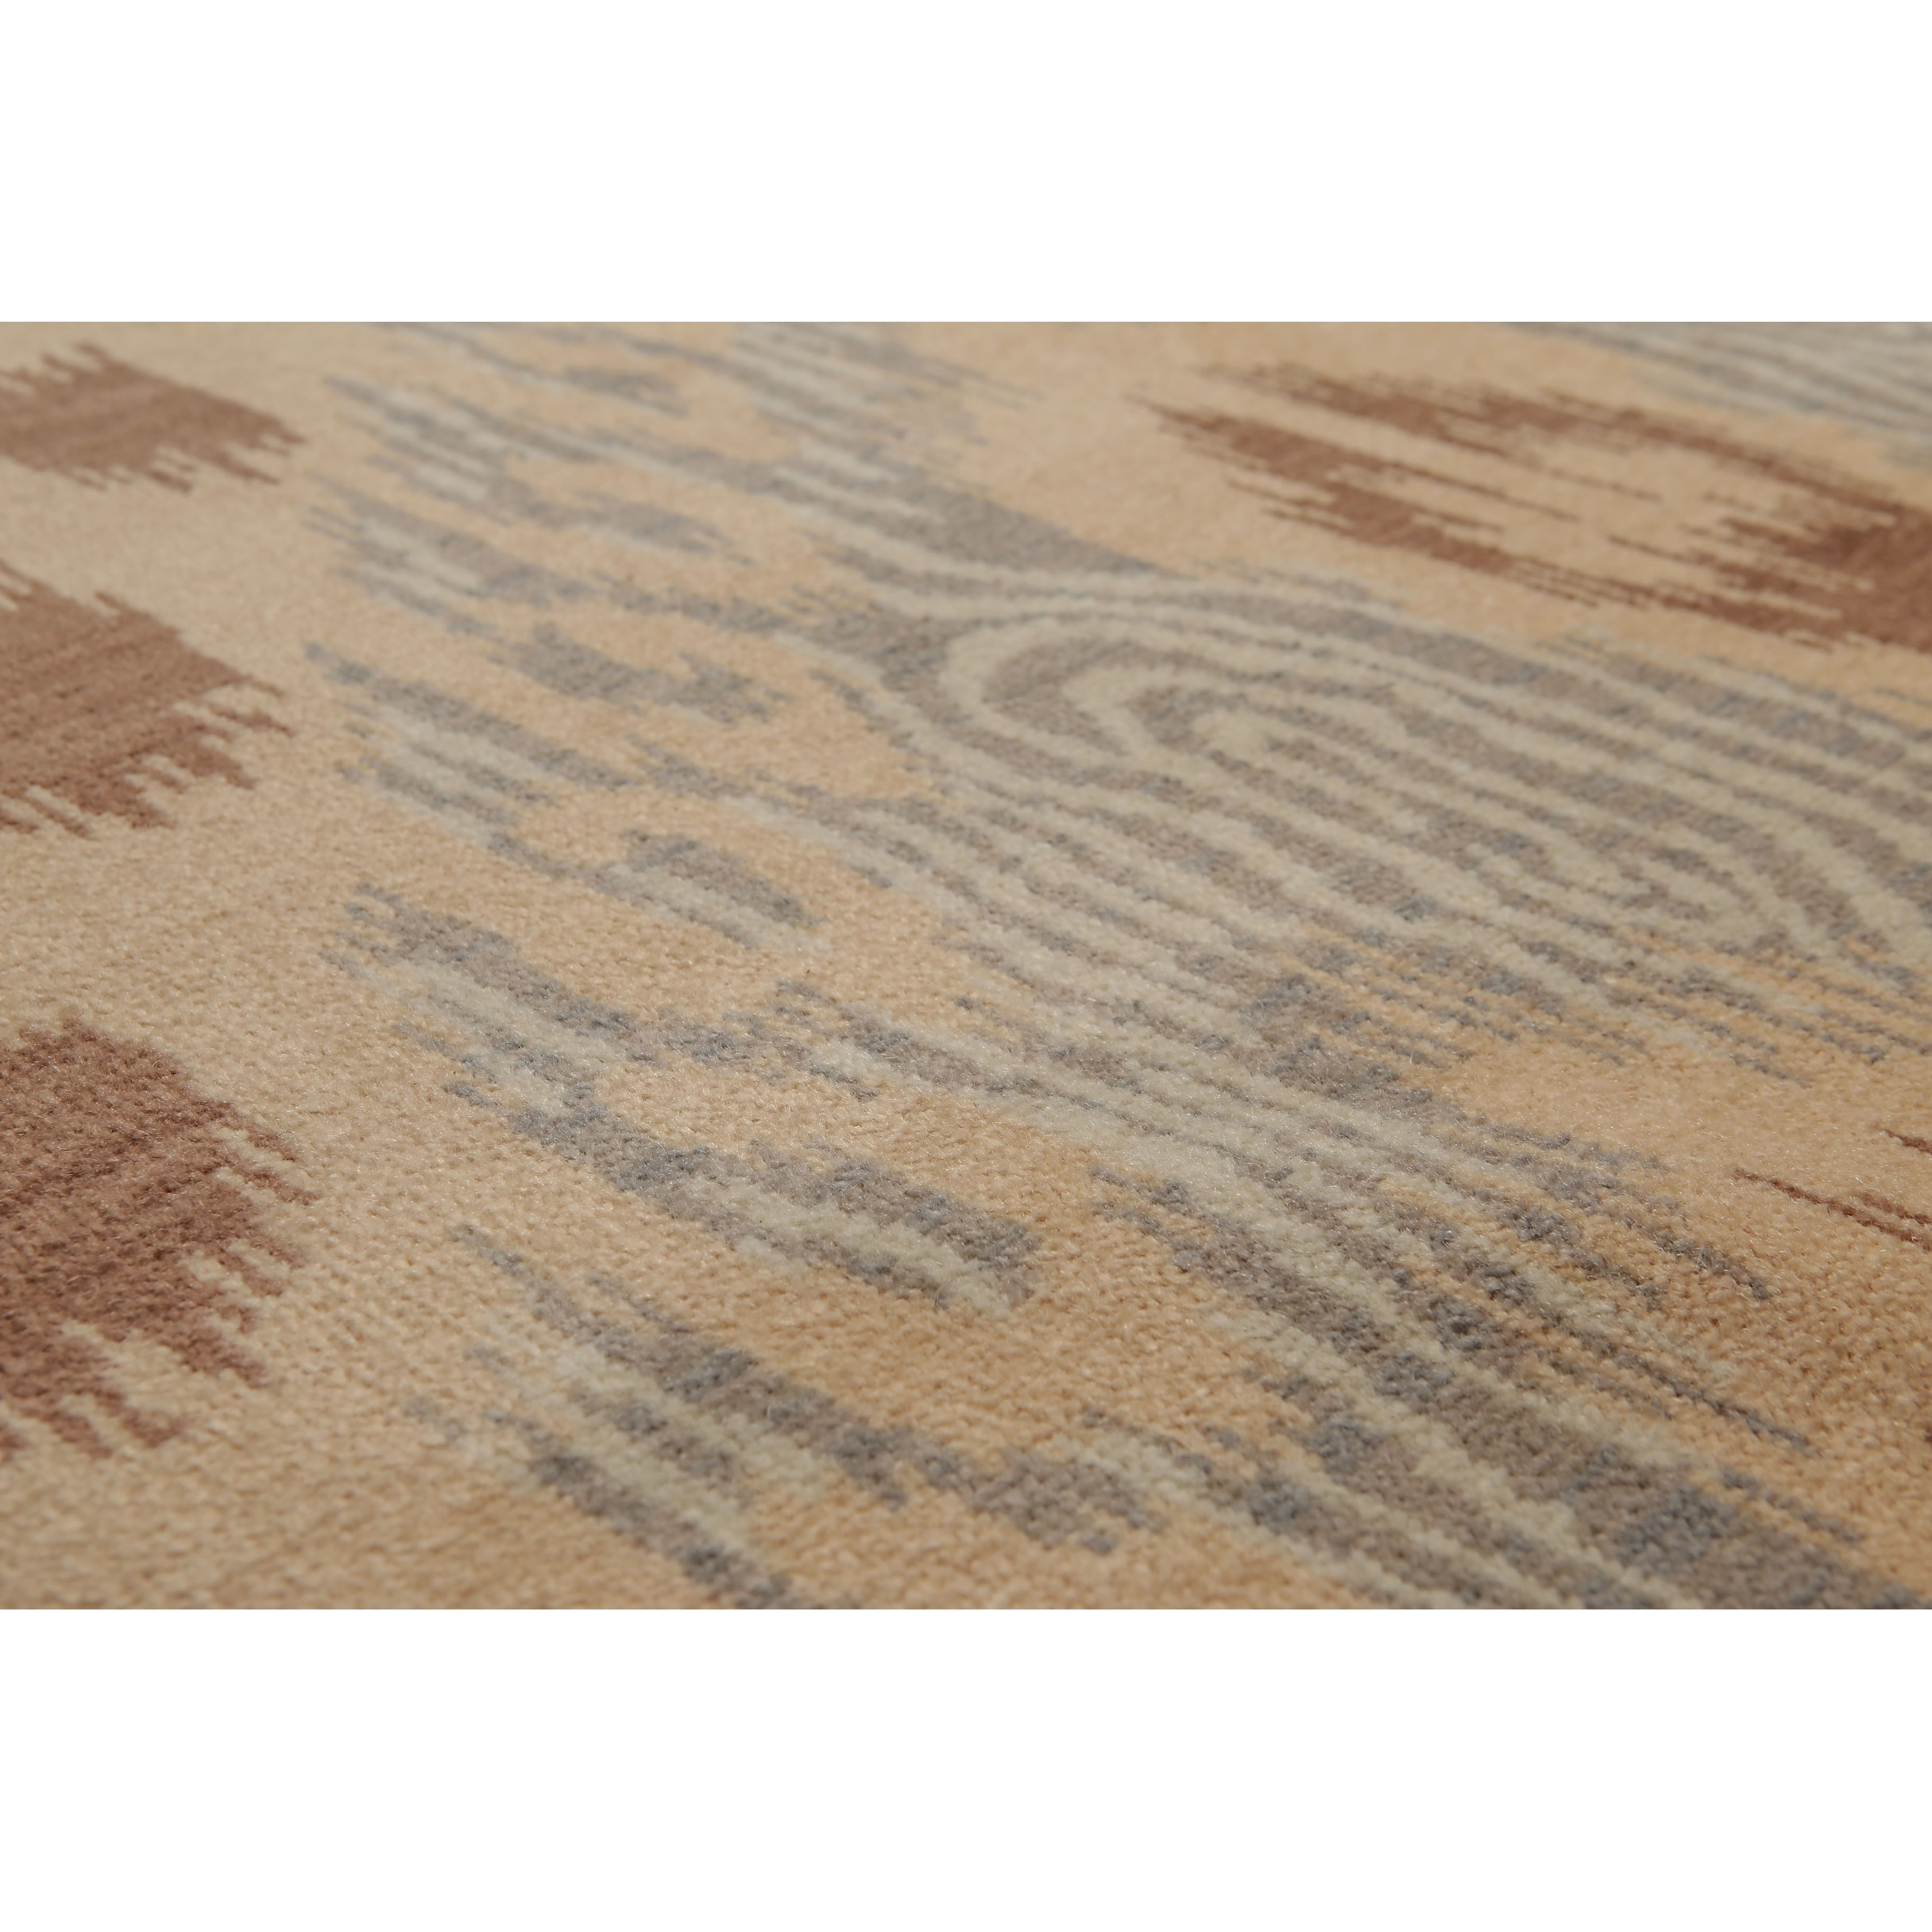 Hand Knotted Ikat Design Tan Brown Oriental Wool Traditional Oriental Area Rug 8x10 8 X 10 On Sale Overstock 20956395